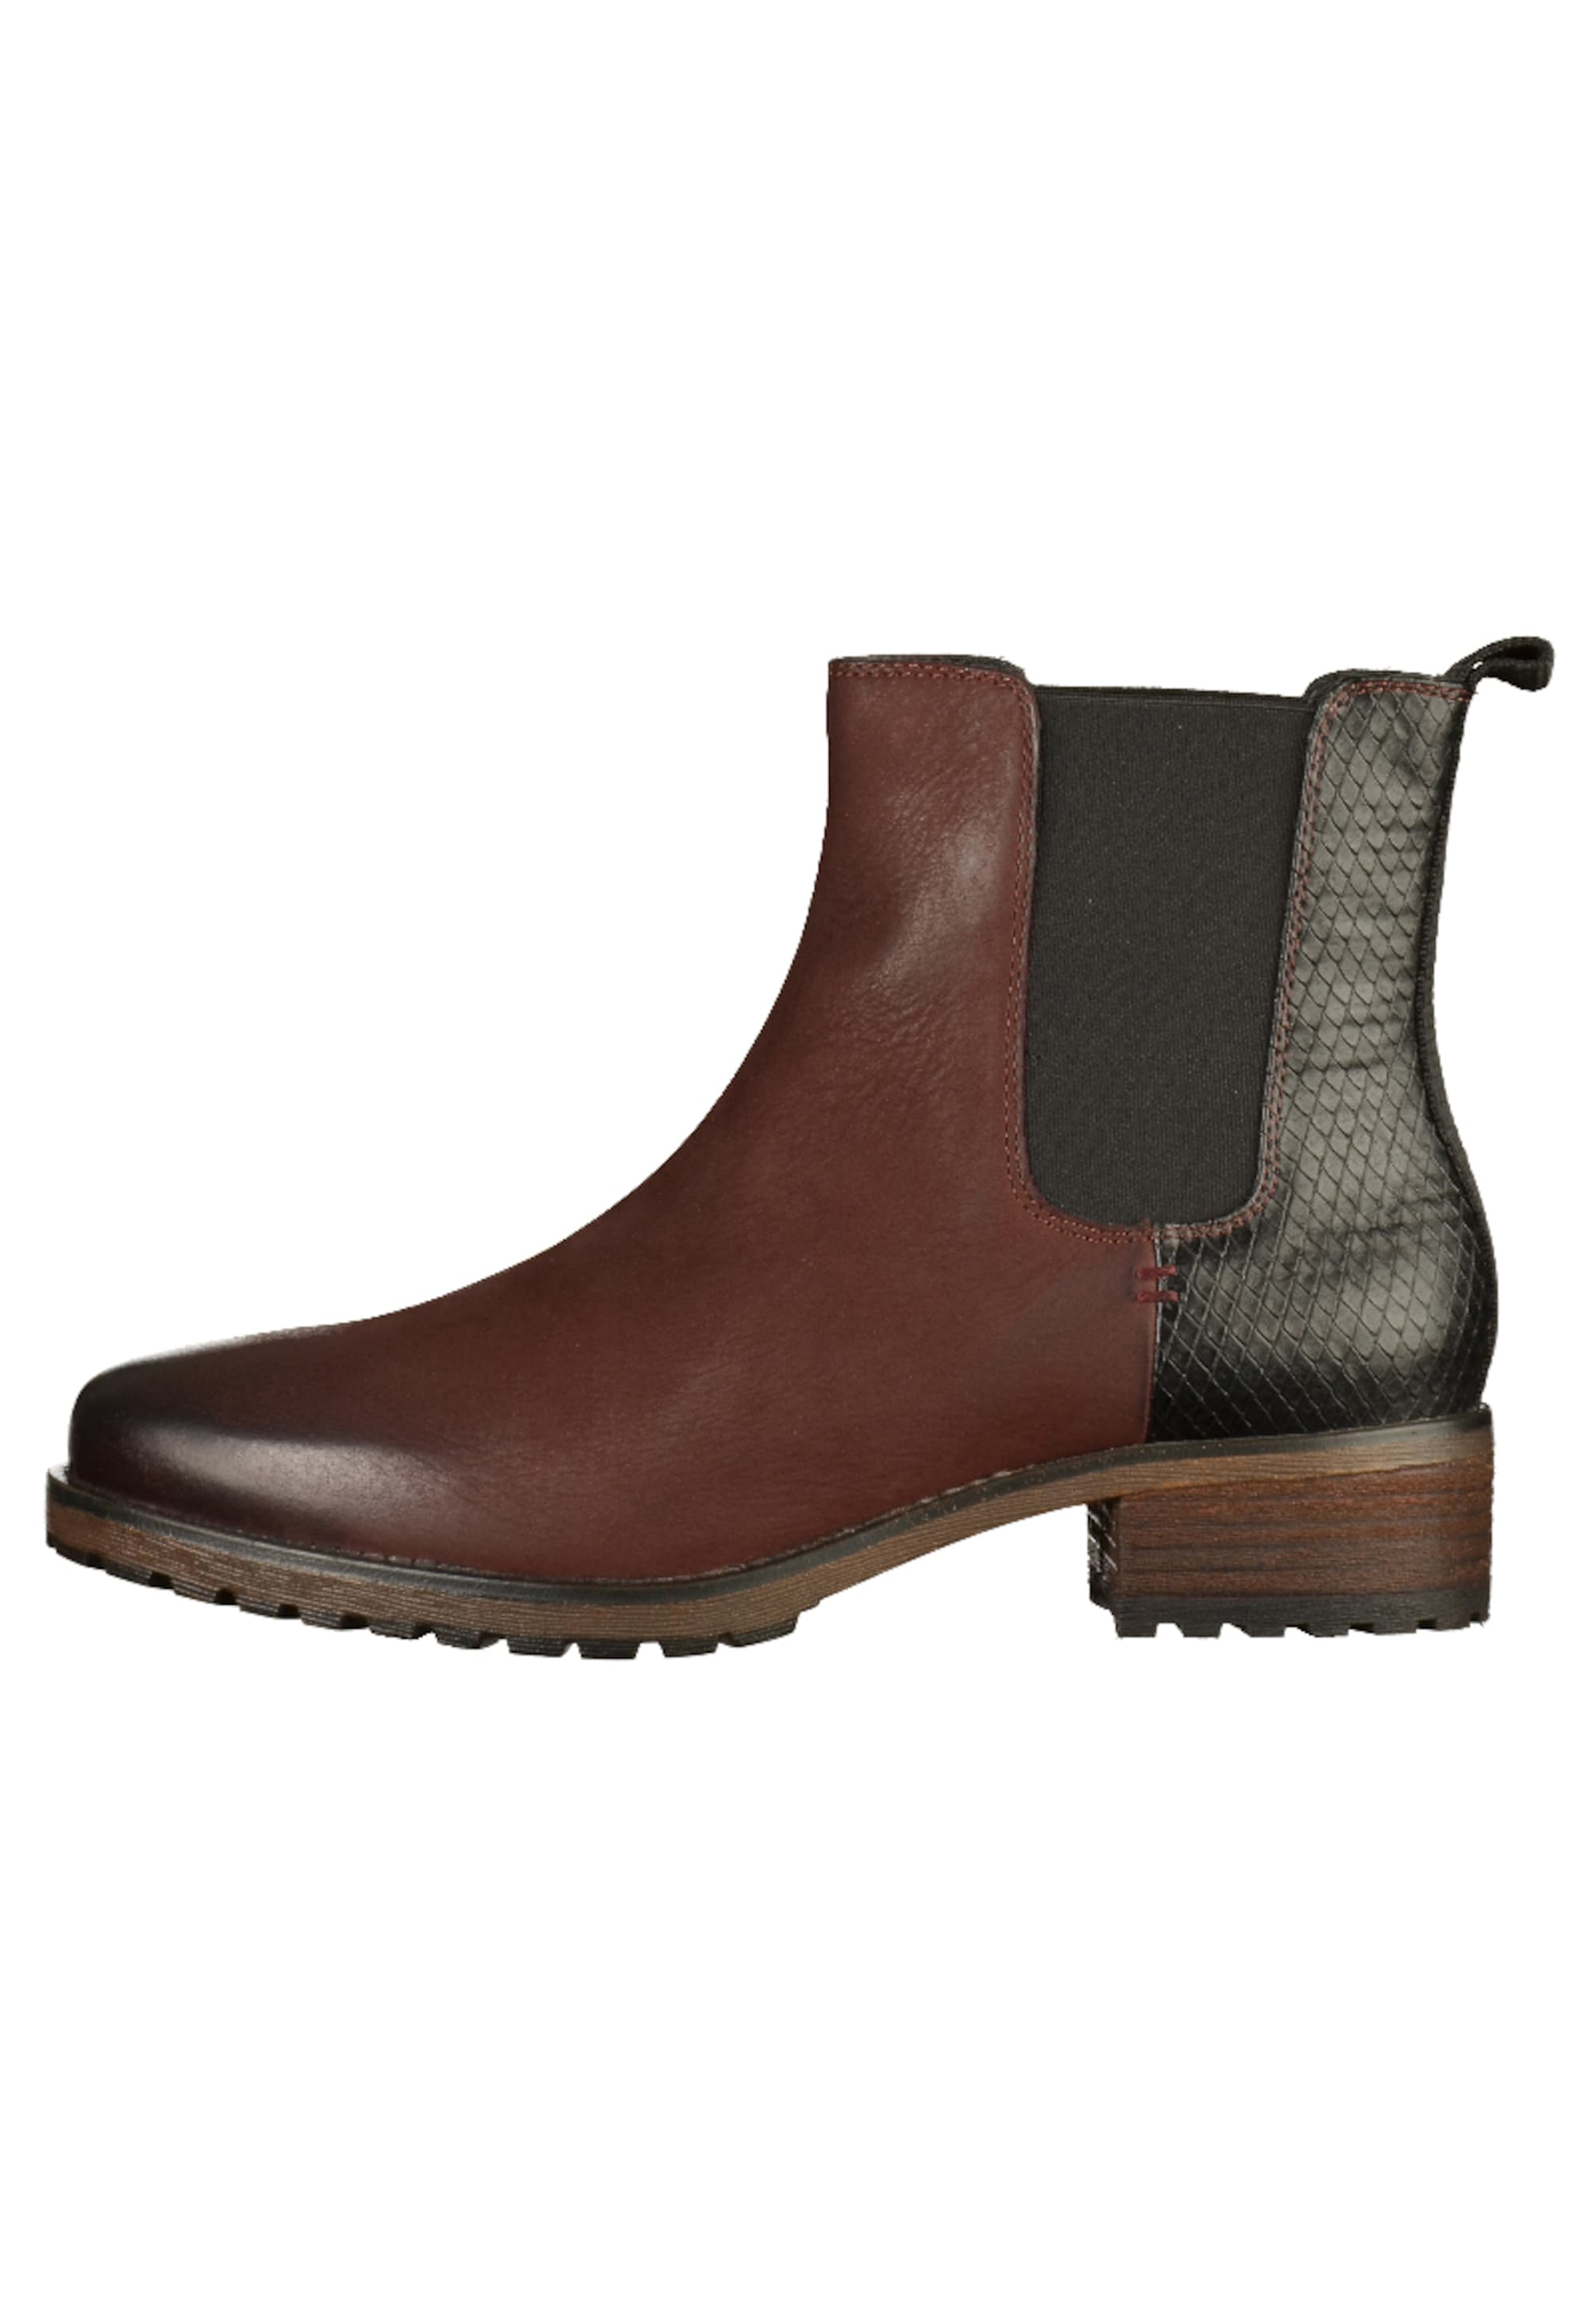 Chelsea boots 'Maggy'